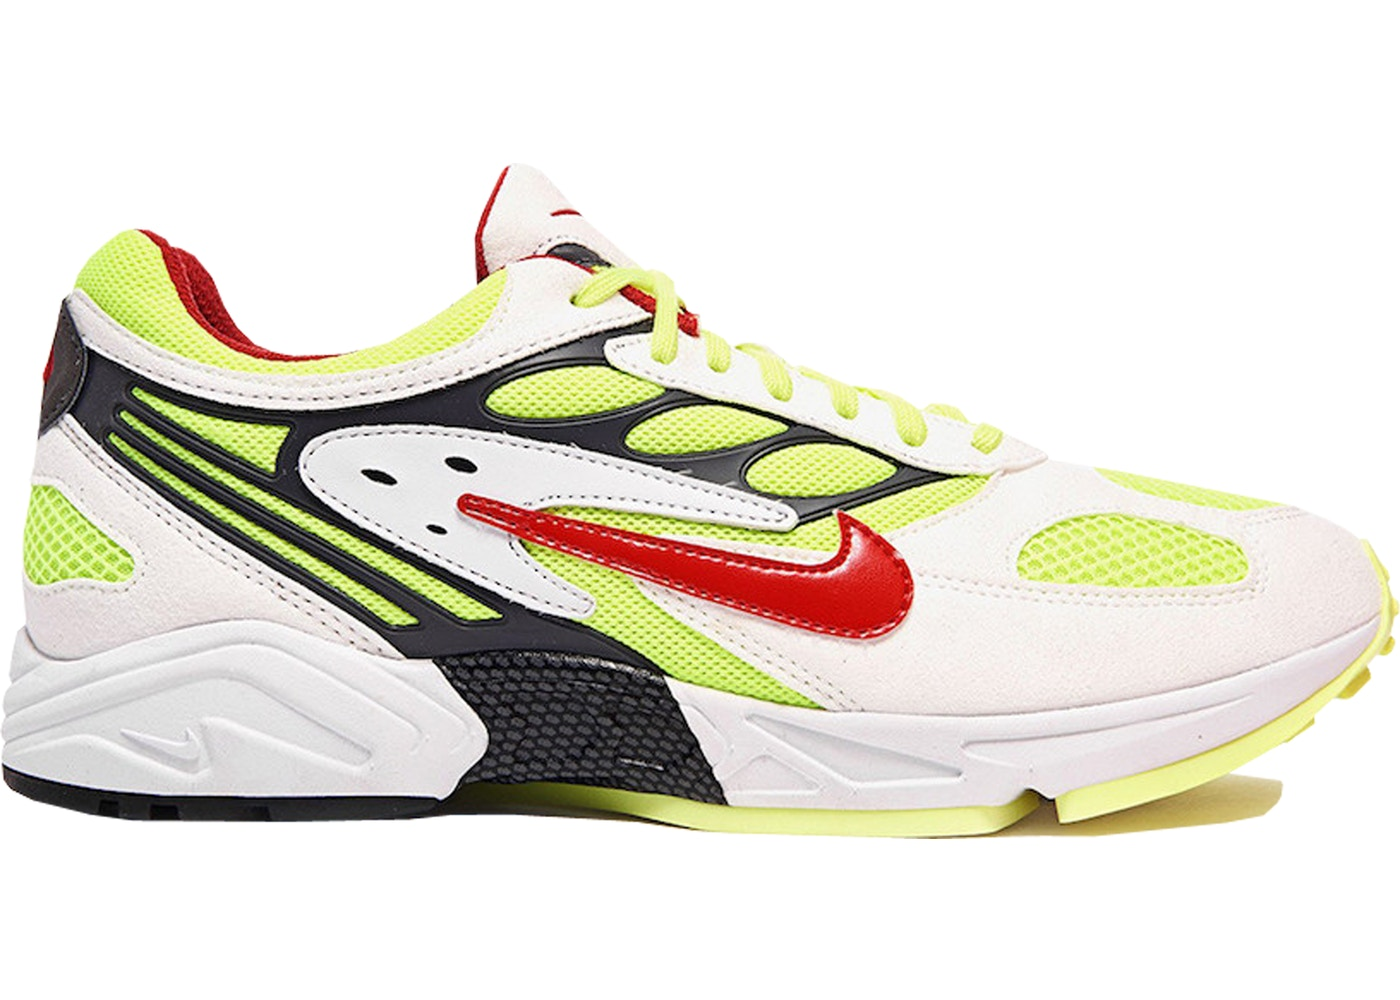 ナイキ NIKE エア 白 ホワイト 赤 レッド スニーカー 【 AIR WHITE RED GHOST RACER ATOM NEON YELLOW REDNEON YELLOWDARK GREYGYM 】 メンズ